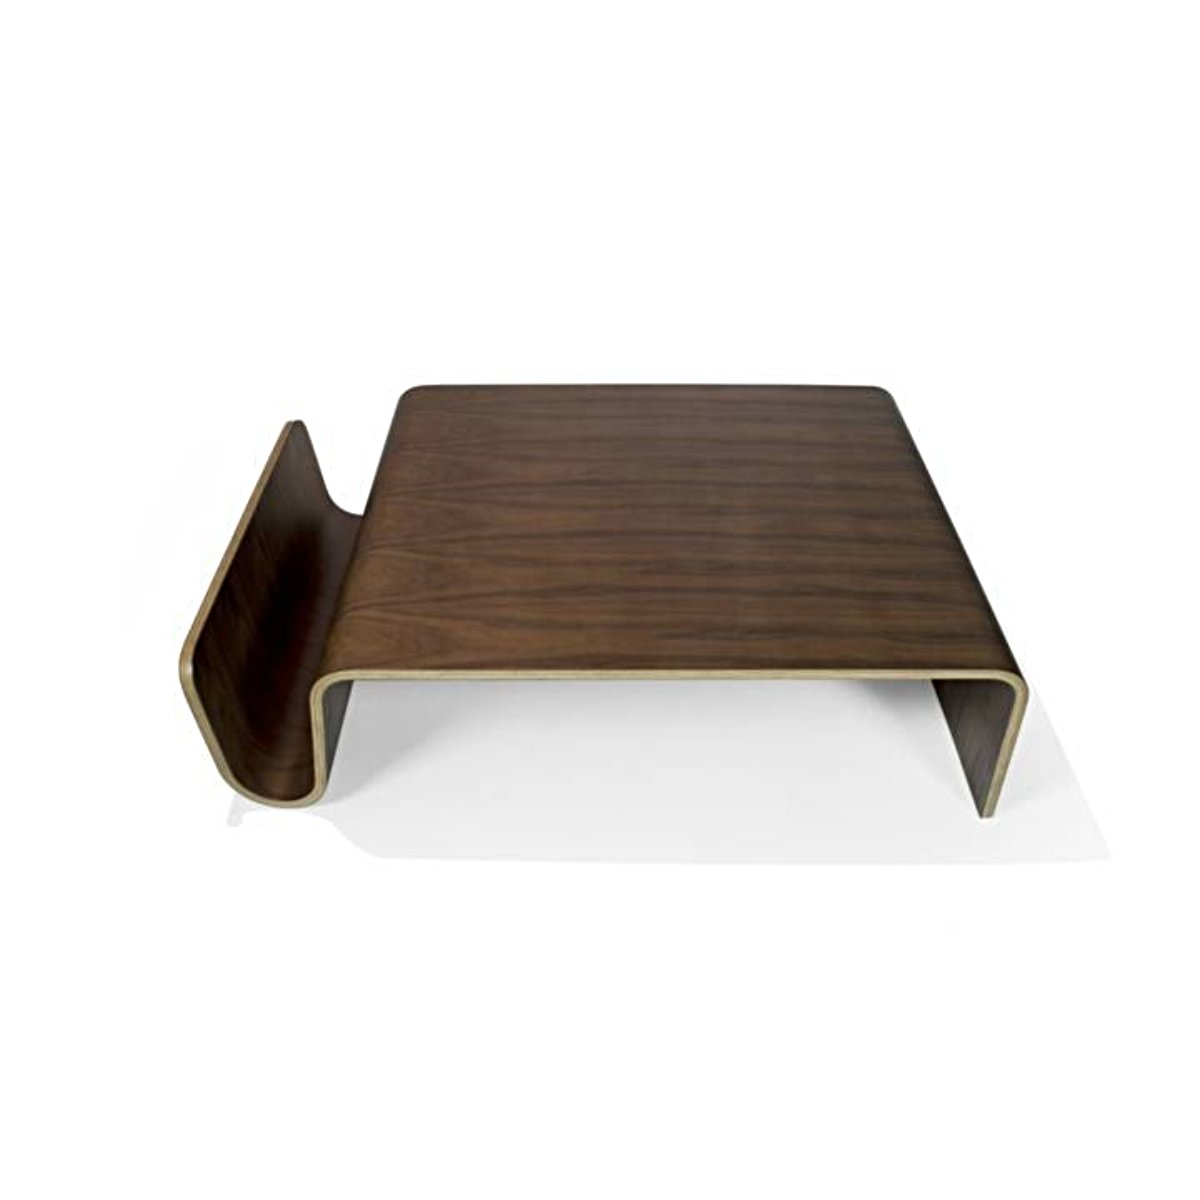 ... Reproduction Of Eric Pfeiffer Scando Coffee Table ...